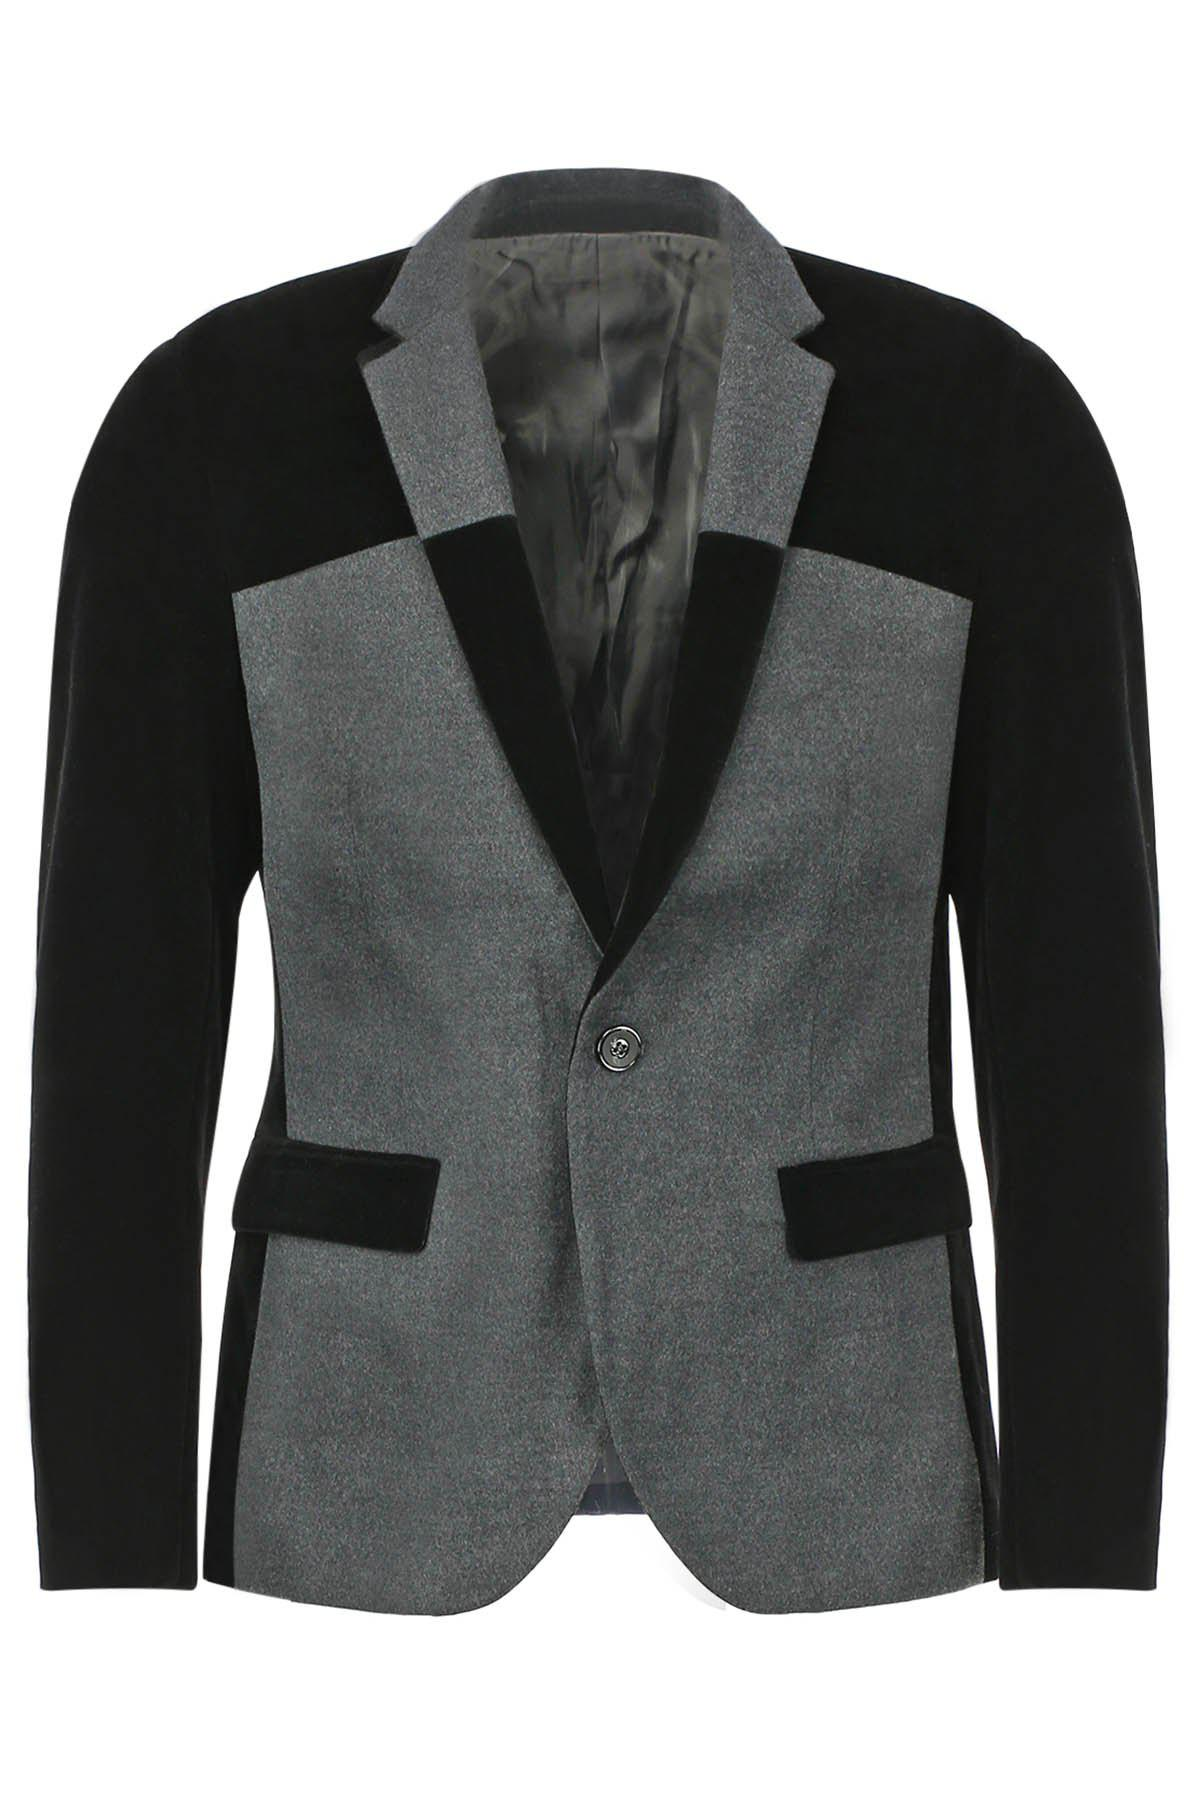 Slimming Lapel Modish Color Block Splicing Long Sleeve Woolen Blend Men's Blazer - BLACK 4XL